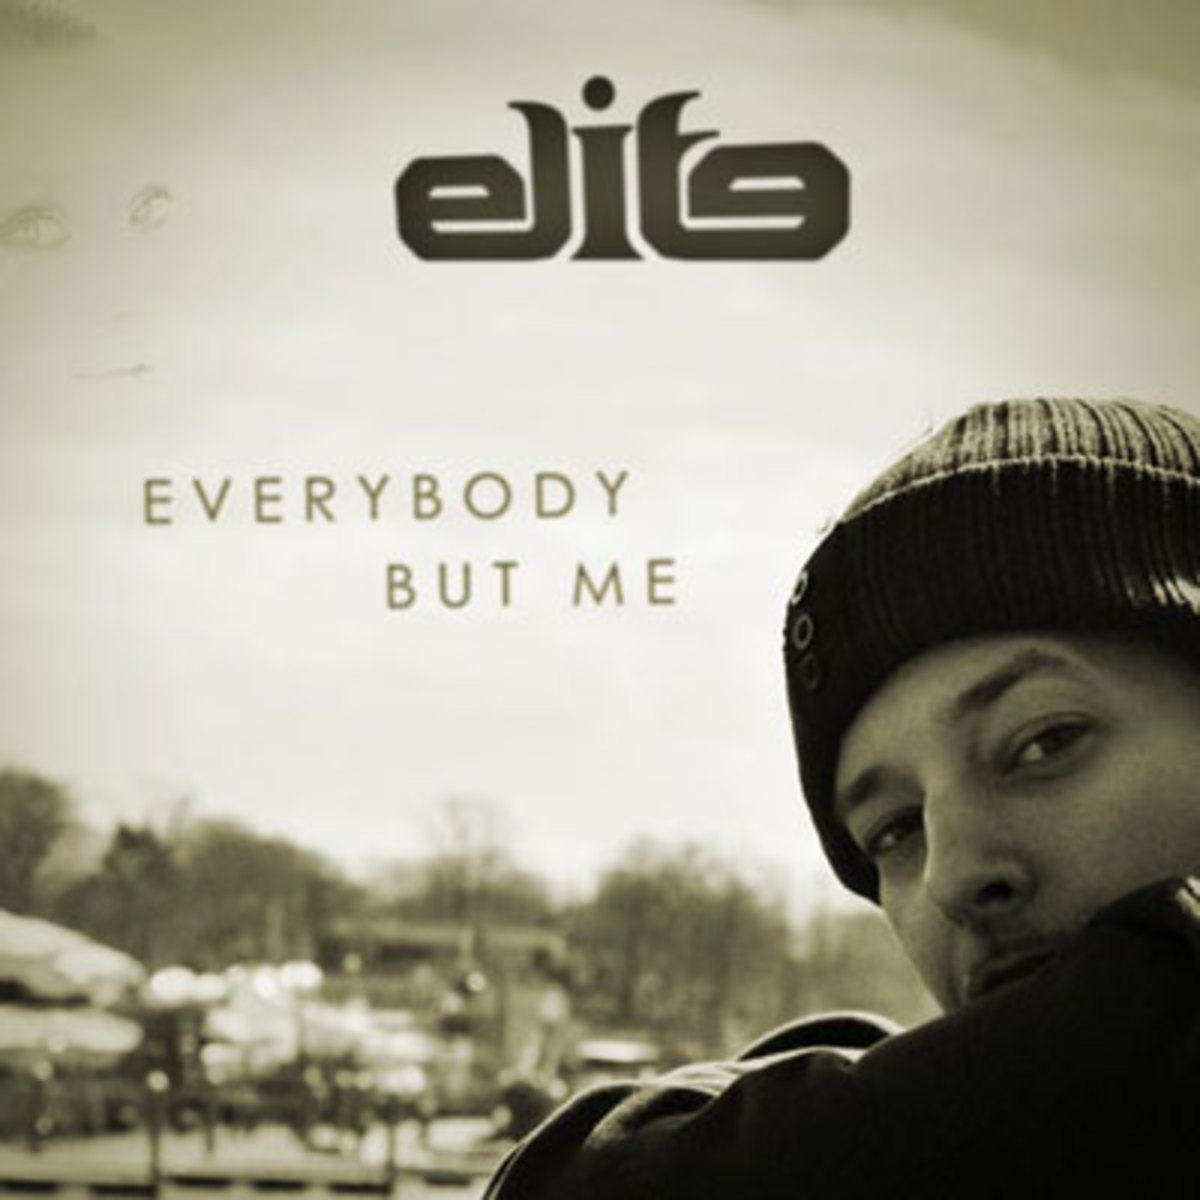 elite-everybodybutme.jpg